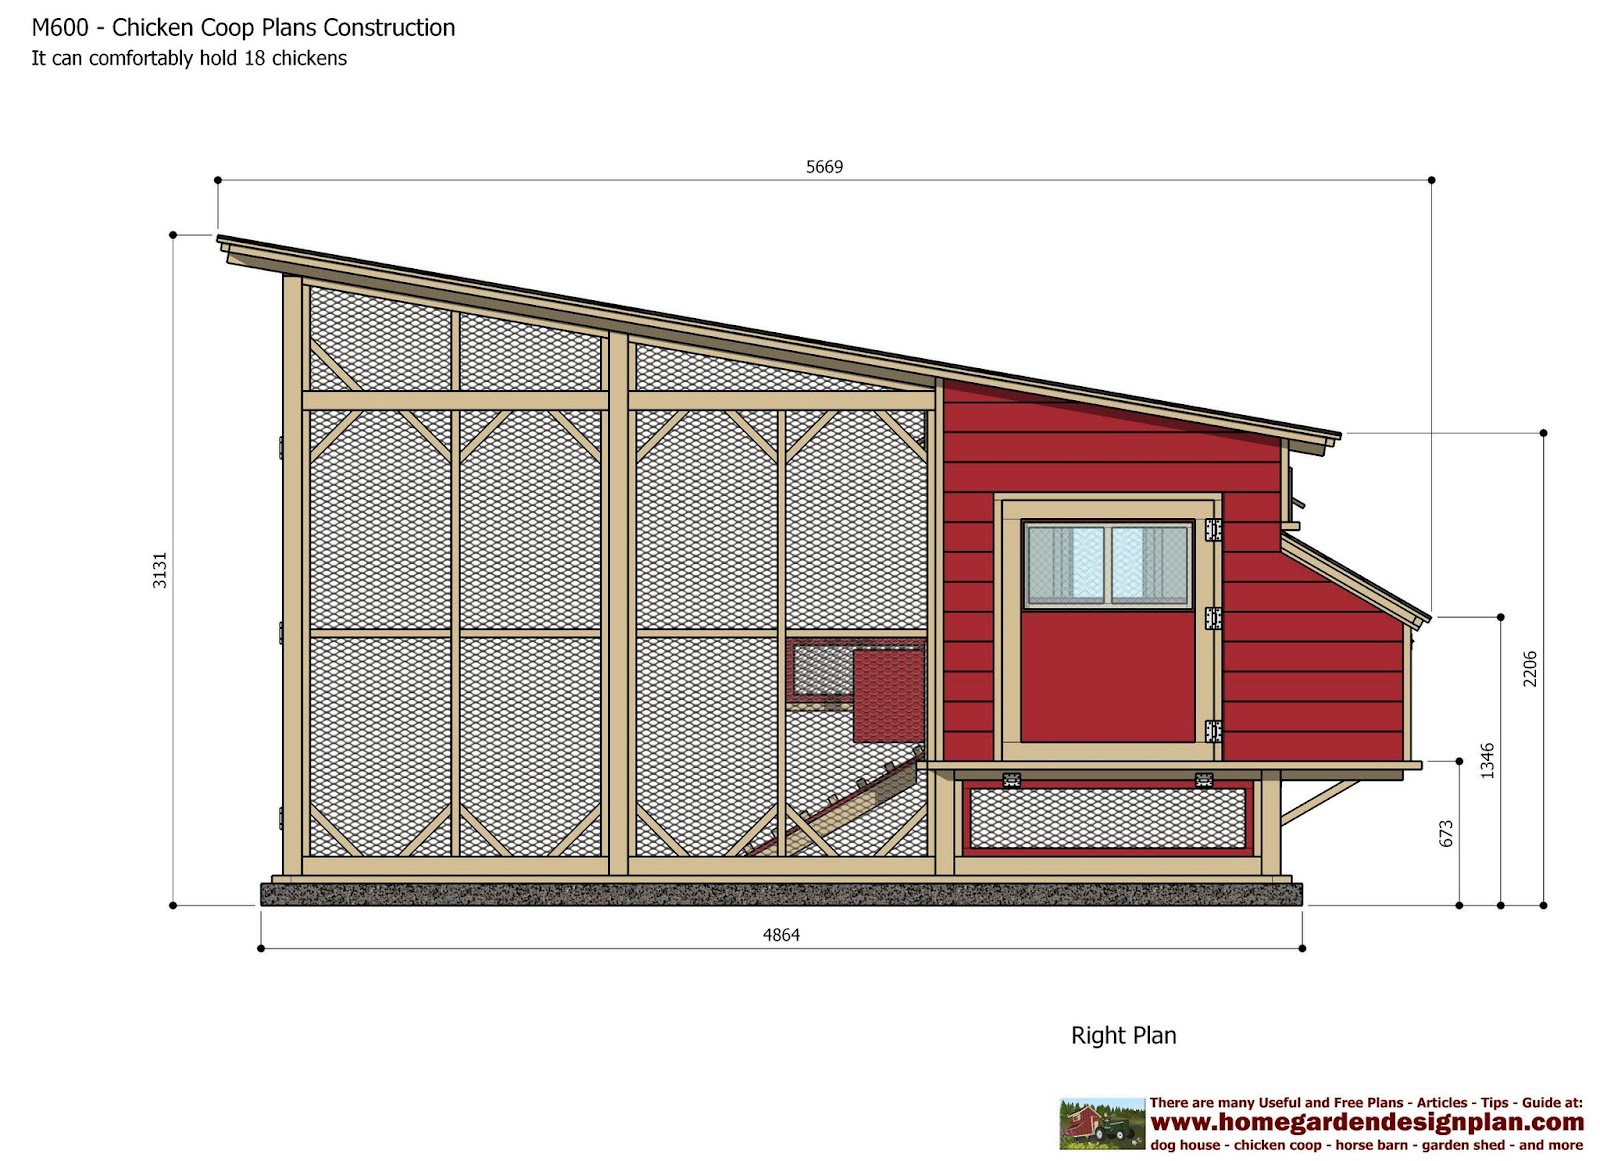 Home garden plans m600 chicken coop plans construction for Plans for chicken coops